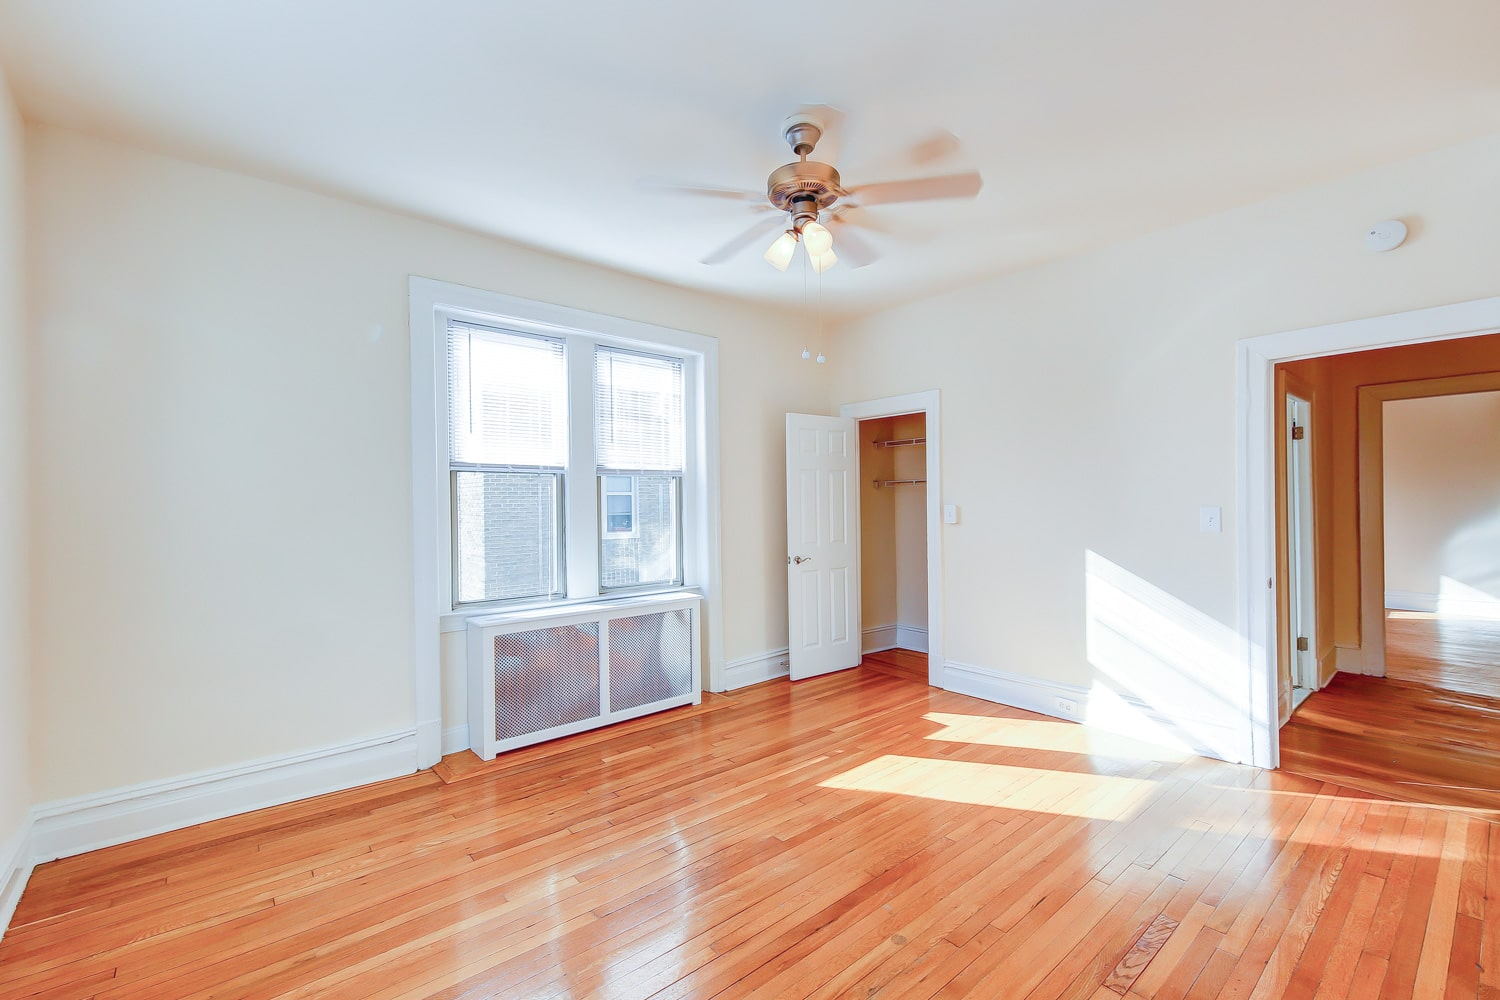 Chatham-courts-apartments-washington-dc-bedroom (2)-min